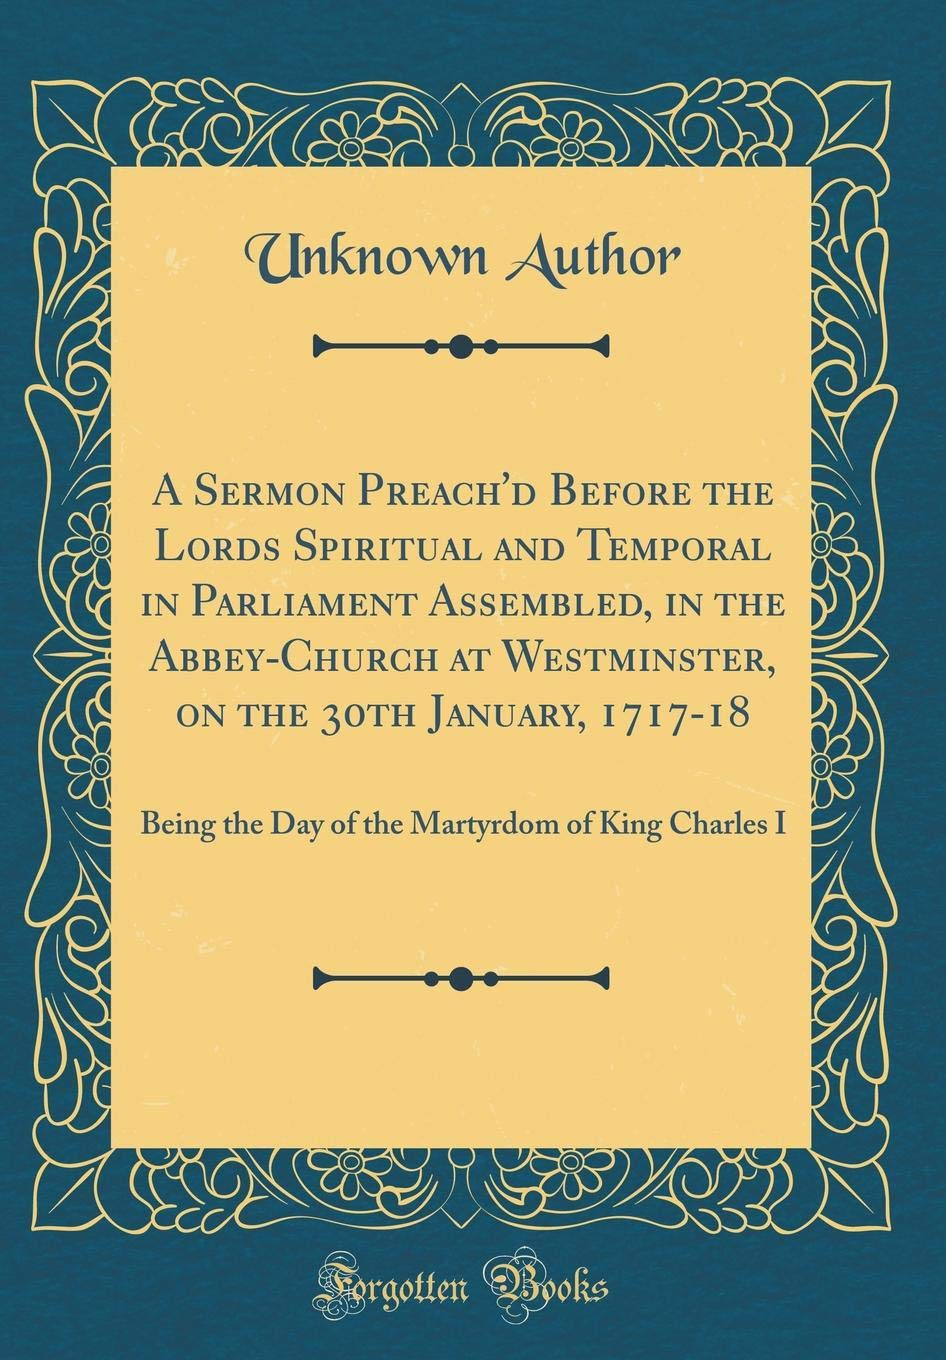 Read Online A Sermon Preach'd Before the Lords Spiritual and Temporal in Parliament Assembled, in the Abbey-Church at Westminster, on the 30th January, 1717-18: ... Martyrdom of King Charles I (Classic Reprint) ebook